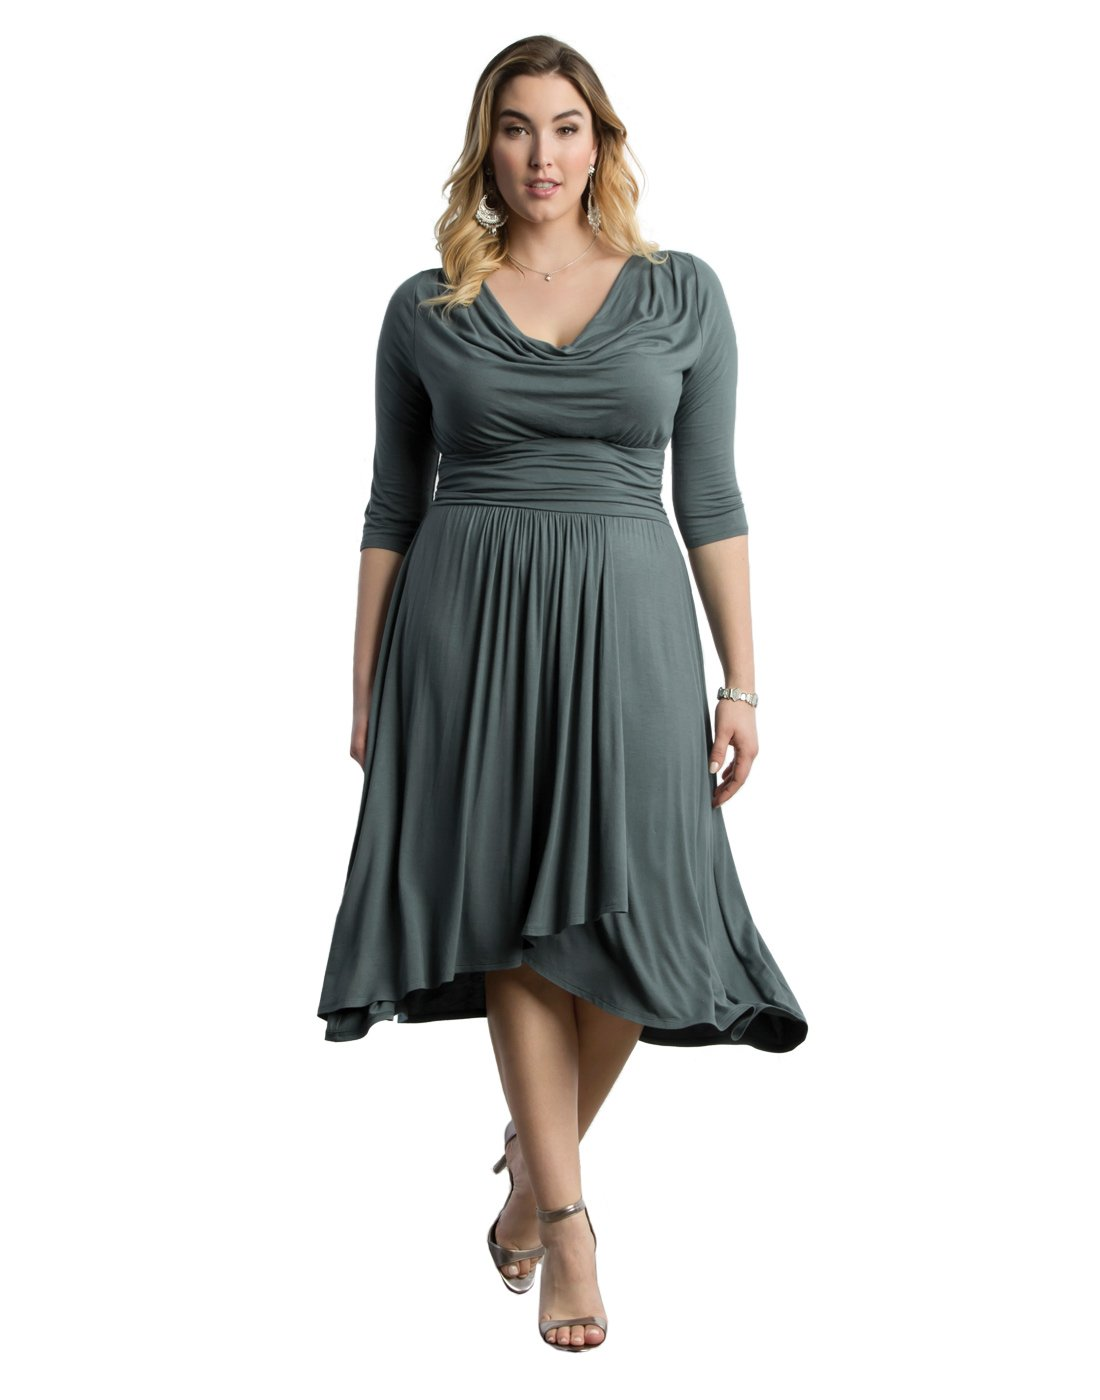 Kiyonna Women's Plus Size Draped In Class 3X Sea Glass Teal by Kiyonna Clothing